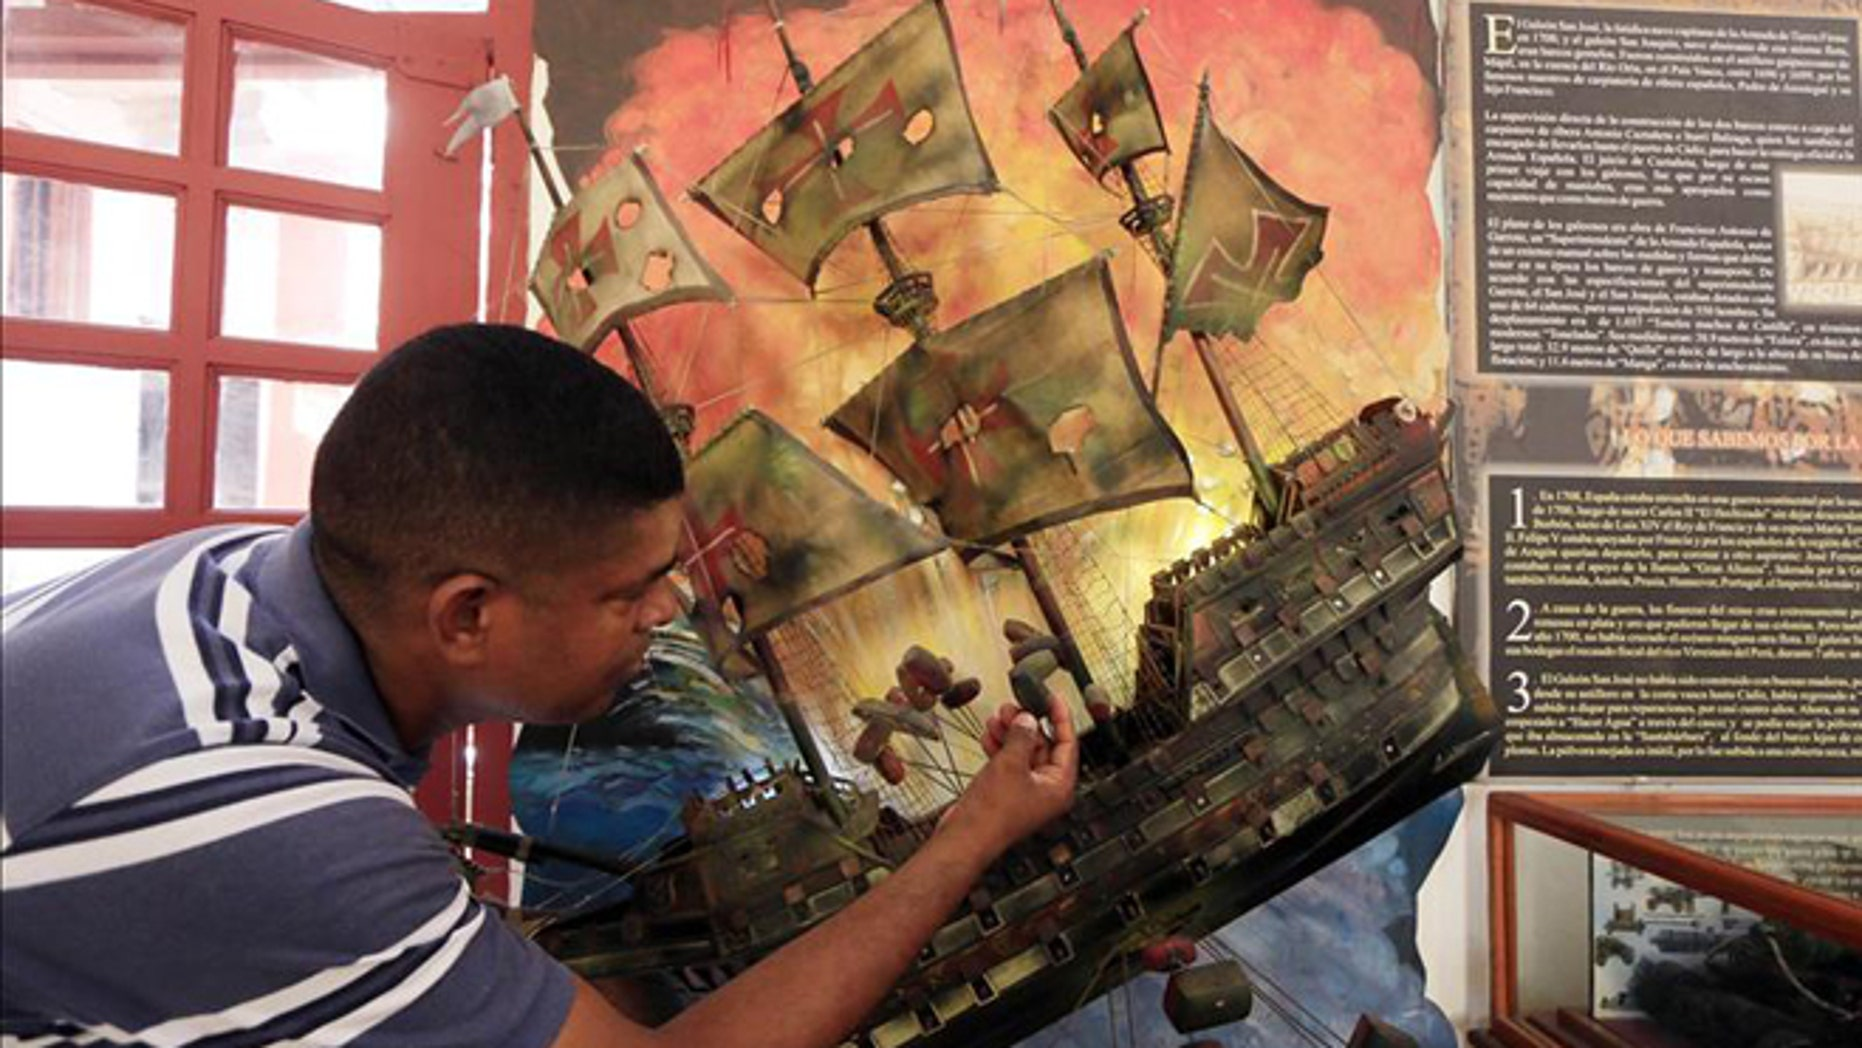 A tourist views a replica of the Spanish galleon San Jose, of which the original was found shipwrecked in Colombian waters last Nov. 27 and whose ownership is to be discussed through diplomatic channels by the foreign ministers of Spain and Colombia. (Photo: EFE/File)